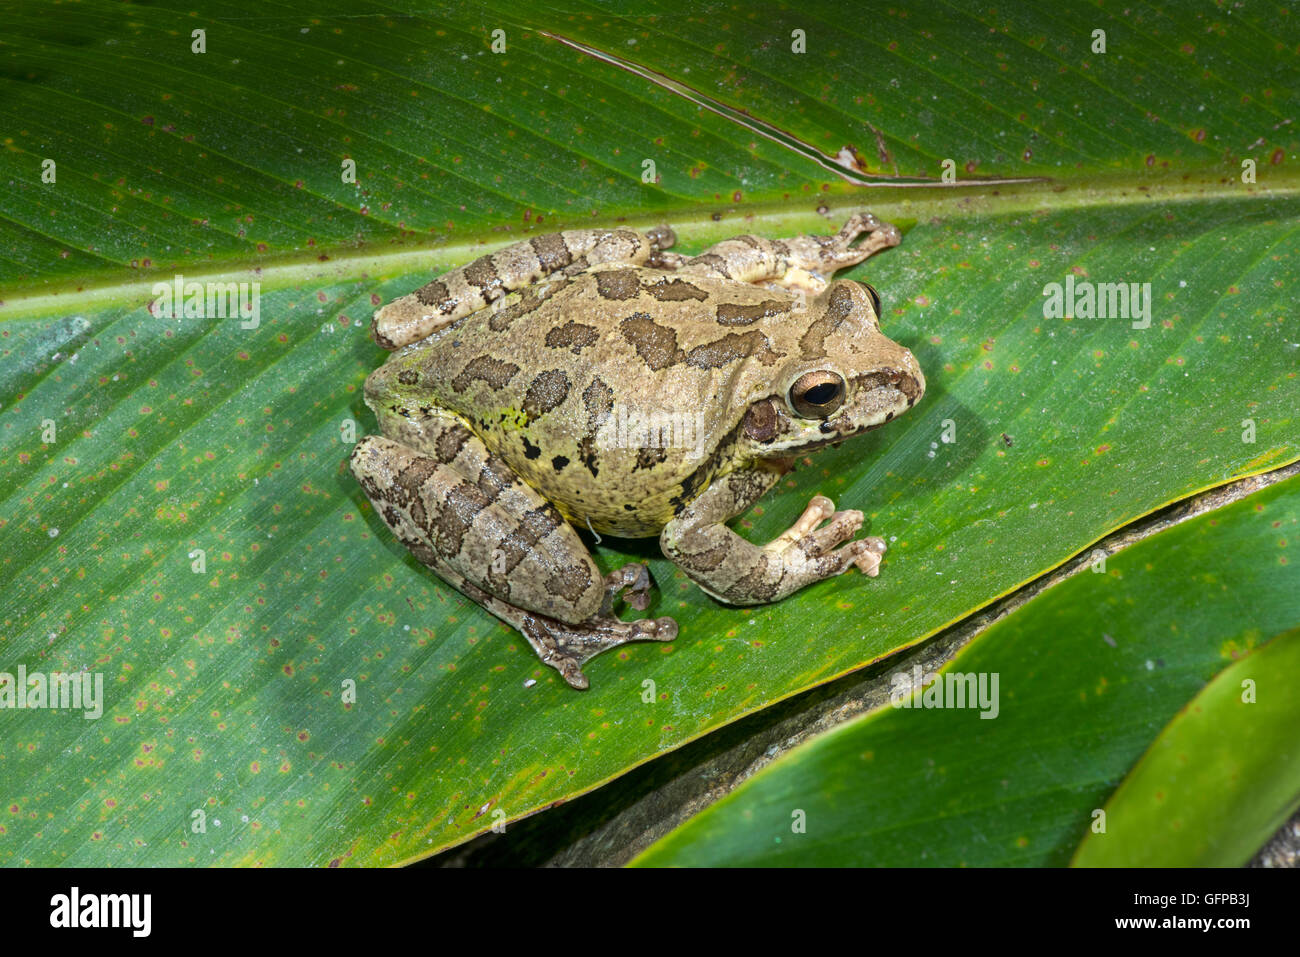 Common Mexican Treefrog  Smilisca baudinii El Tuito, Jalisco, Mexico 12 June      Adult       Hylidae - Stock Image